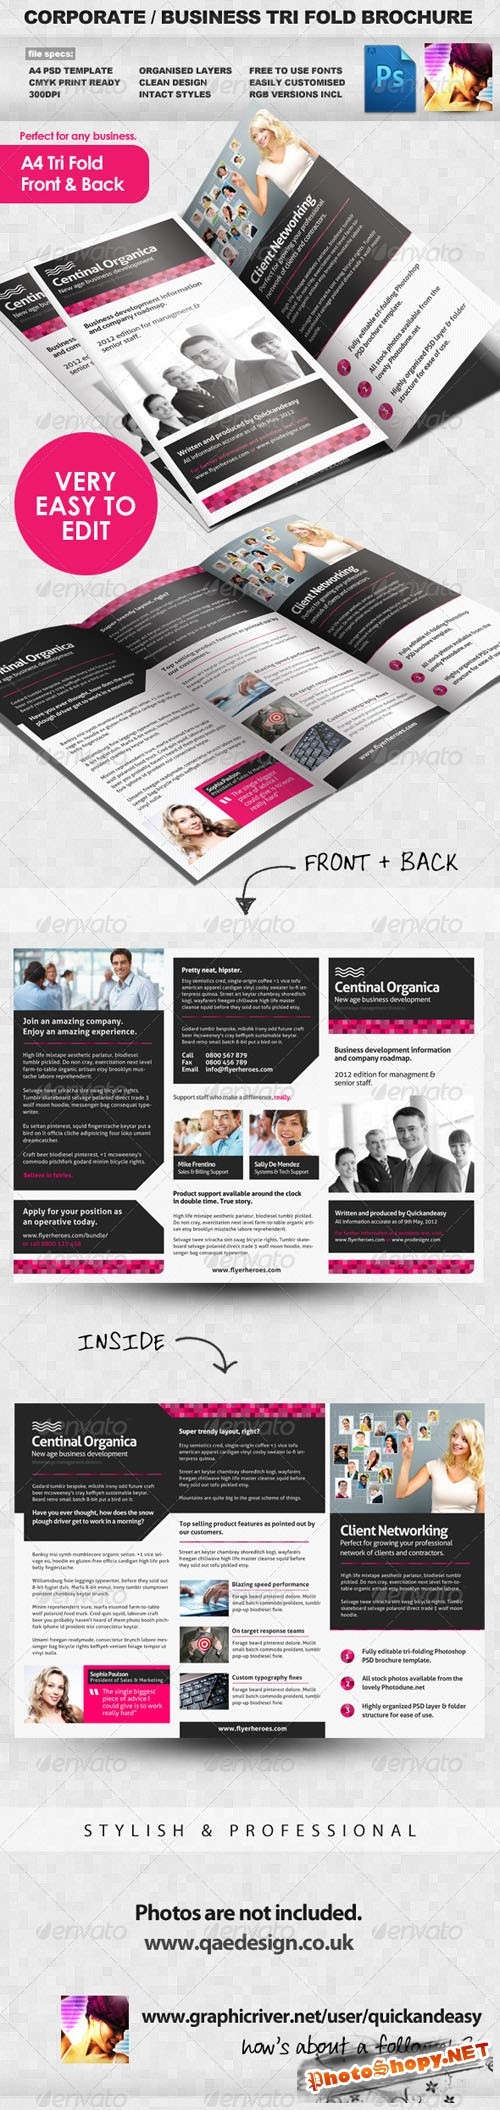 GraphicRiver - Corporate / Business Tri Fold Brochure 2278426